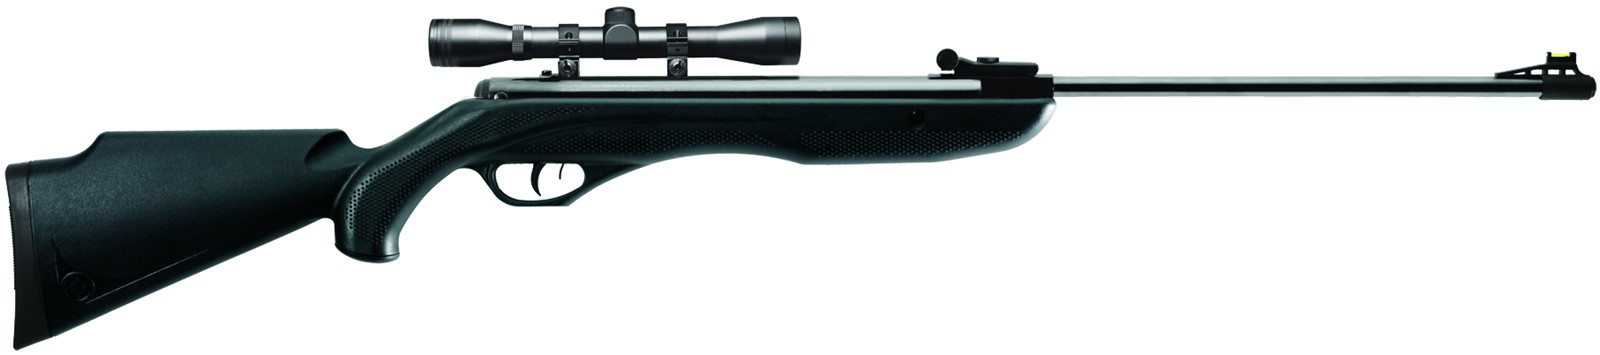 Crosman Phantom.